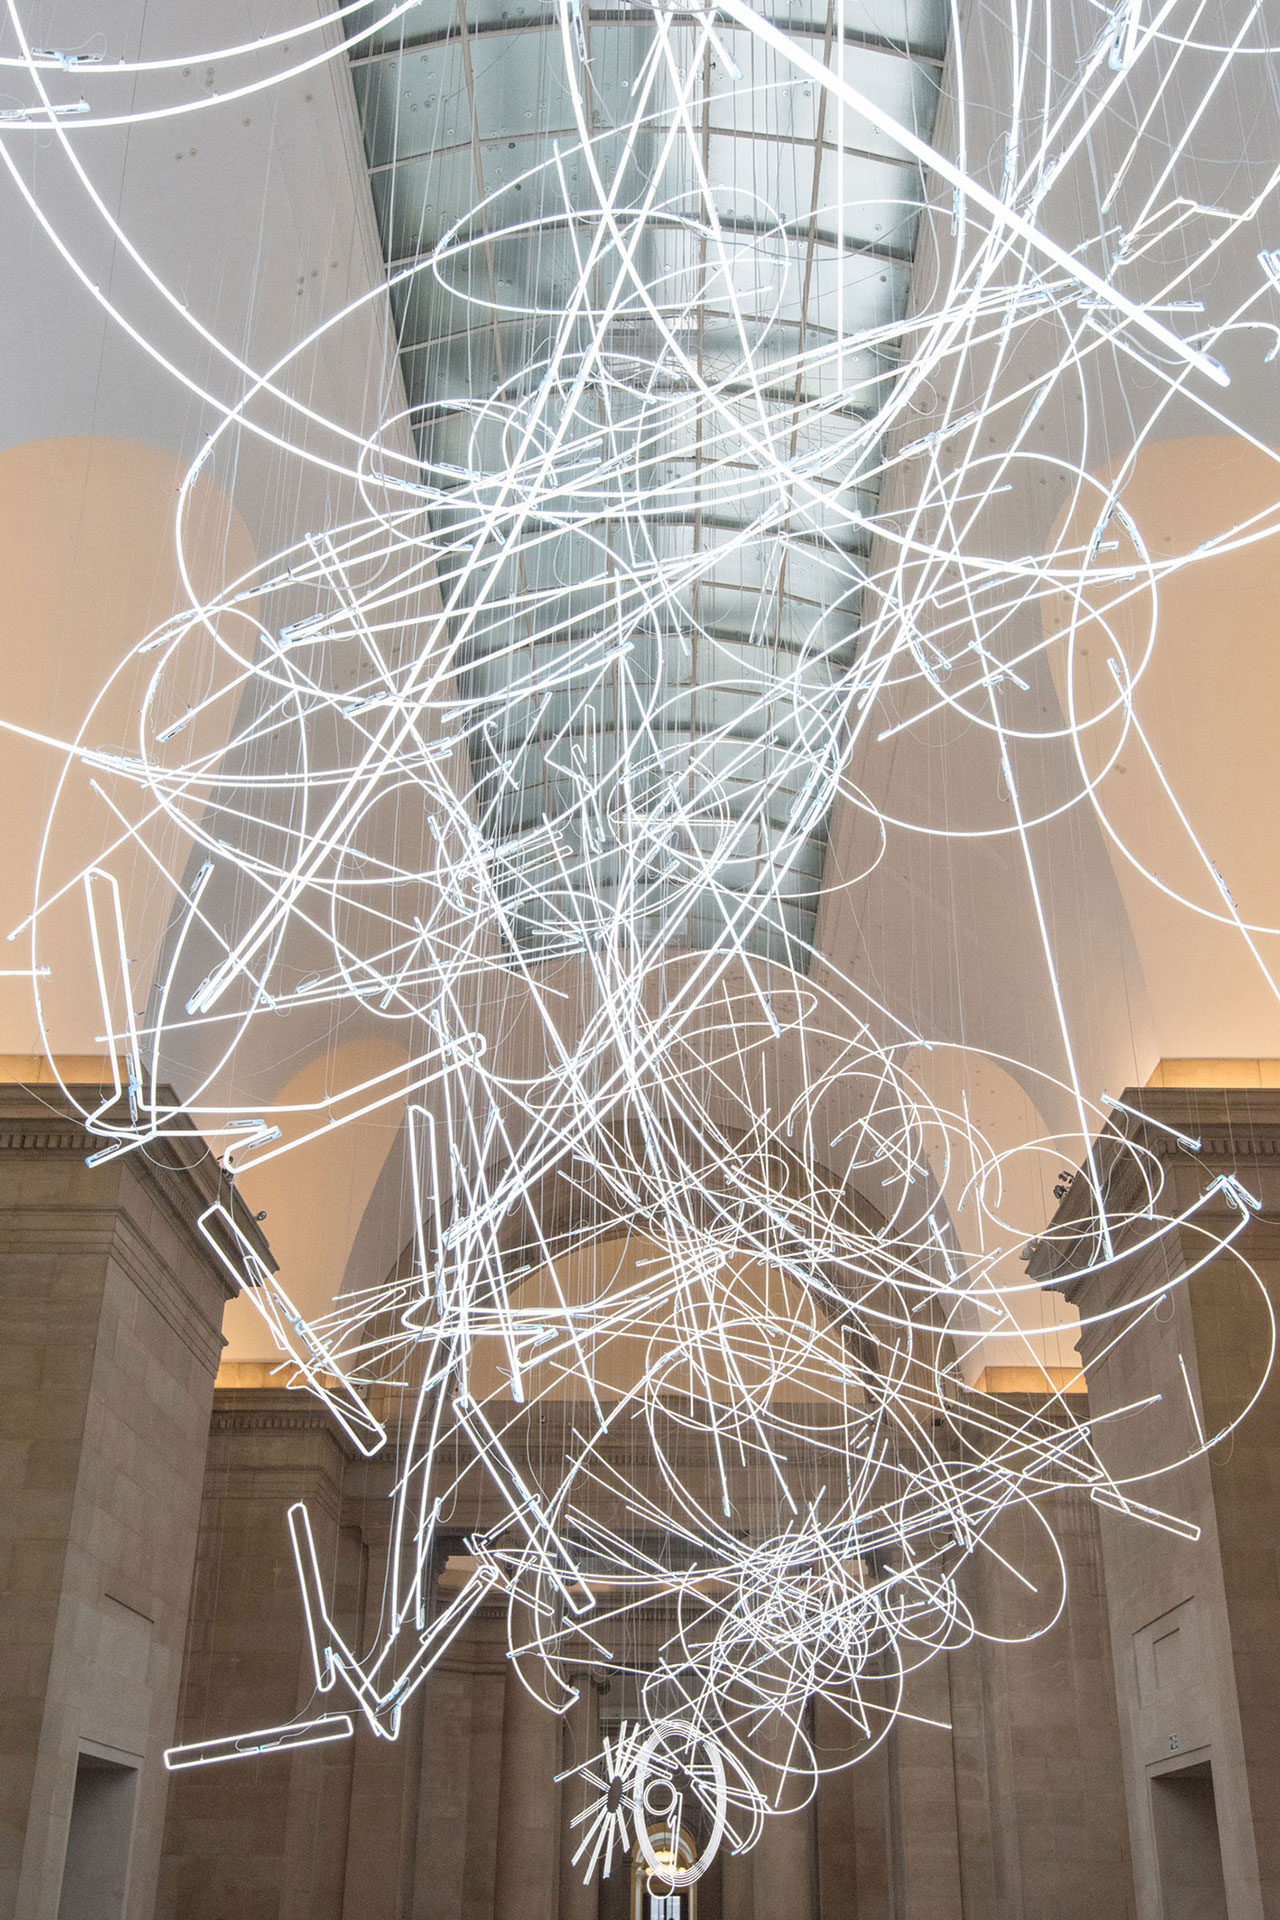 Cerith Wyn Evans, Forms in Space...by Light (in Time), 2017. Tate Britain Commission by Cerith Wyn Evans, Duveen Galleries. © Cerith Wyn Evans, courtesy White Cube. Photo: Joe Humphreys © Tate, London 2018.